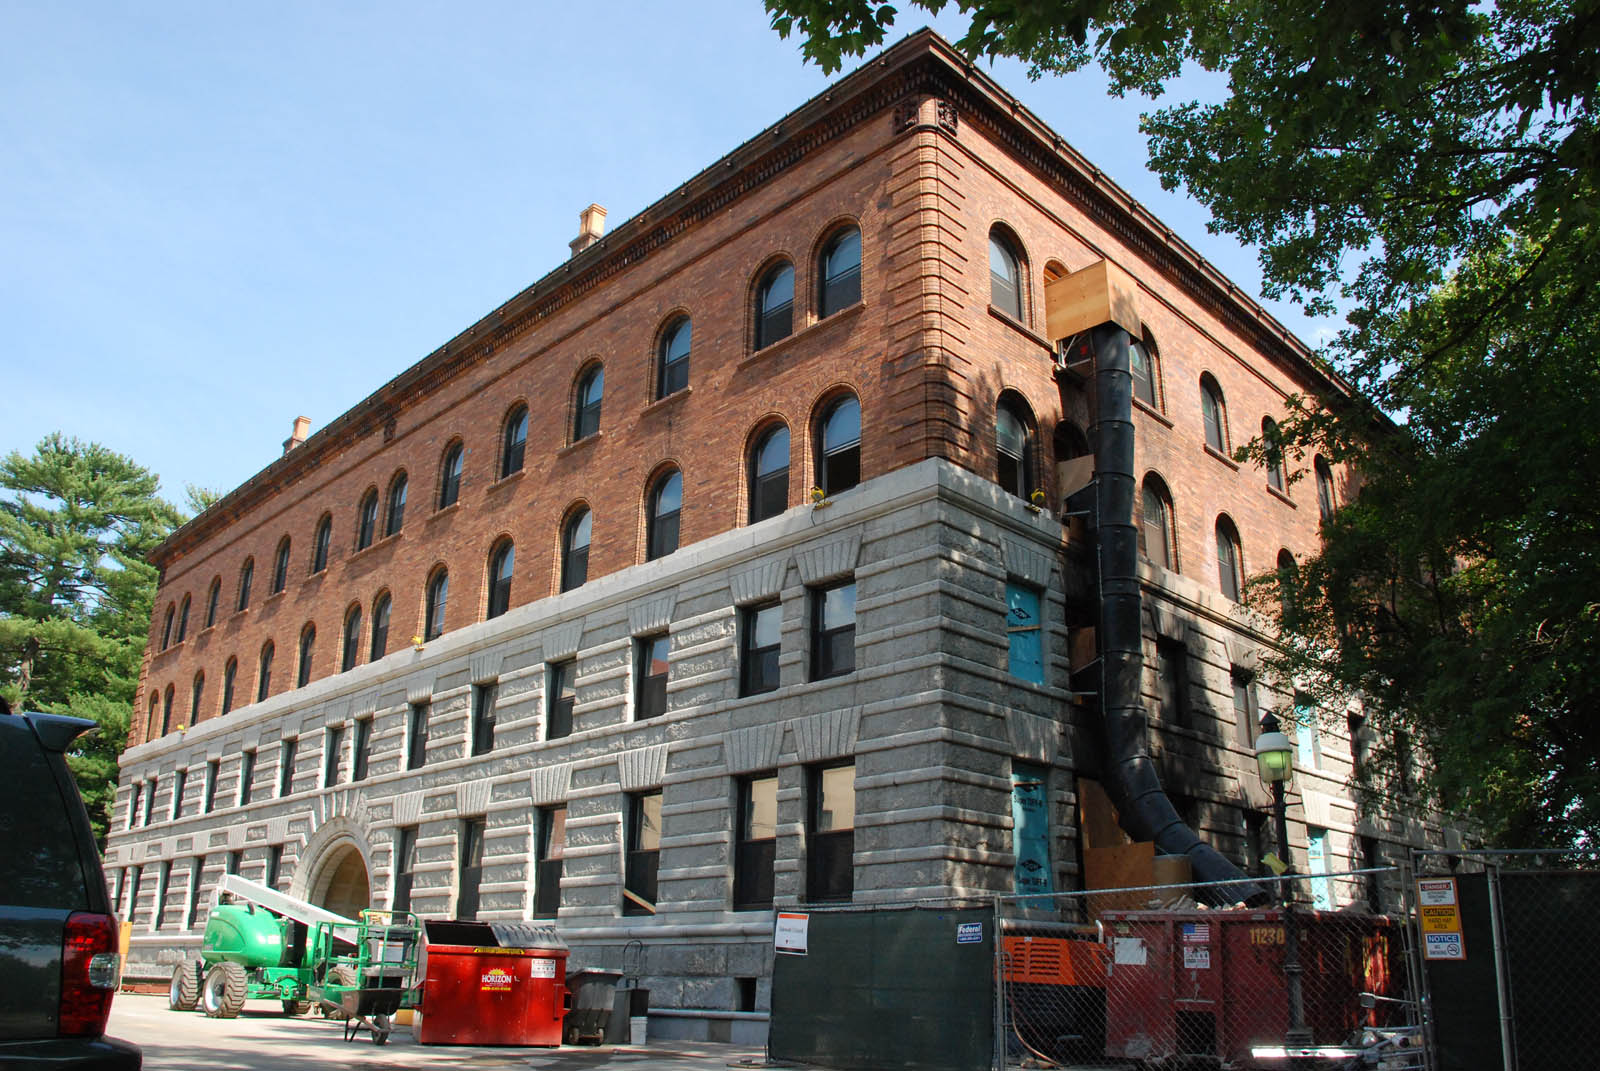 scaffold-rental-rent-scaffolding-superior-scaffold-shoring-princeton-university-183